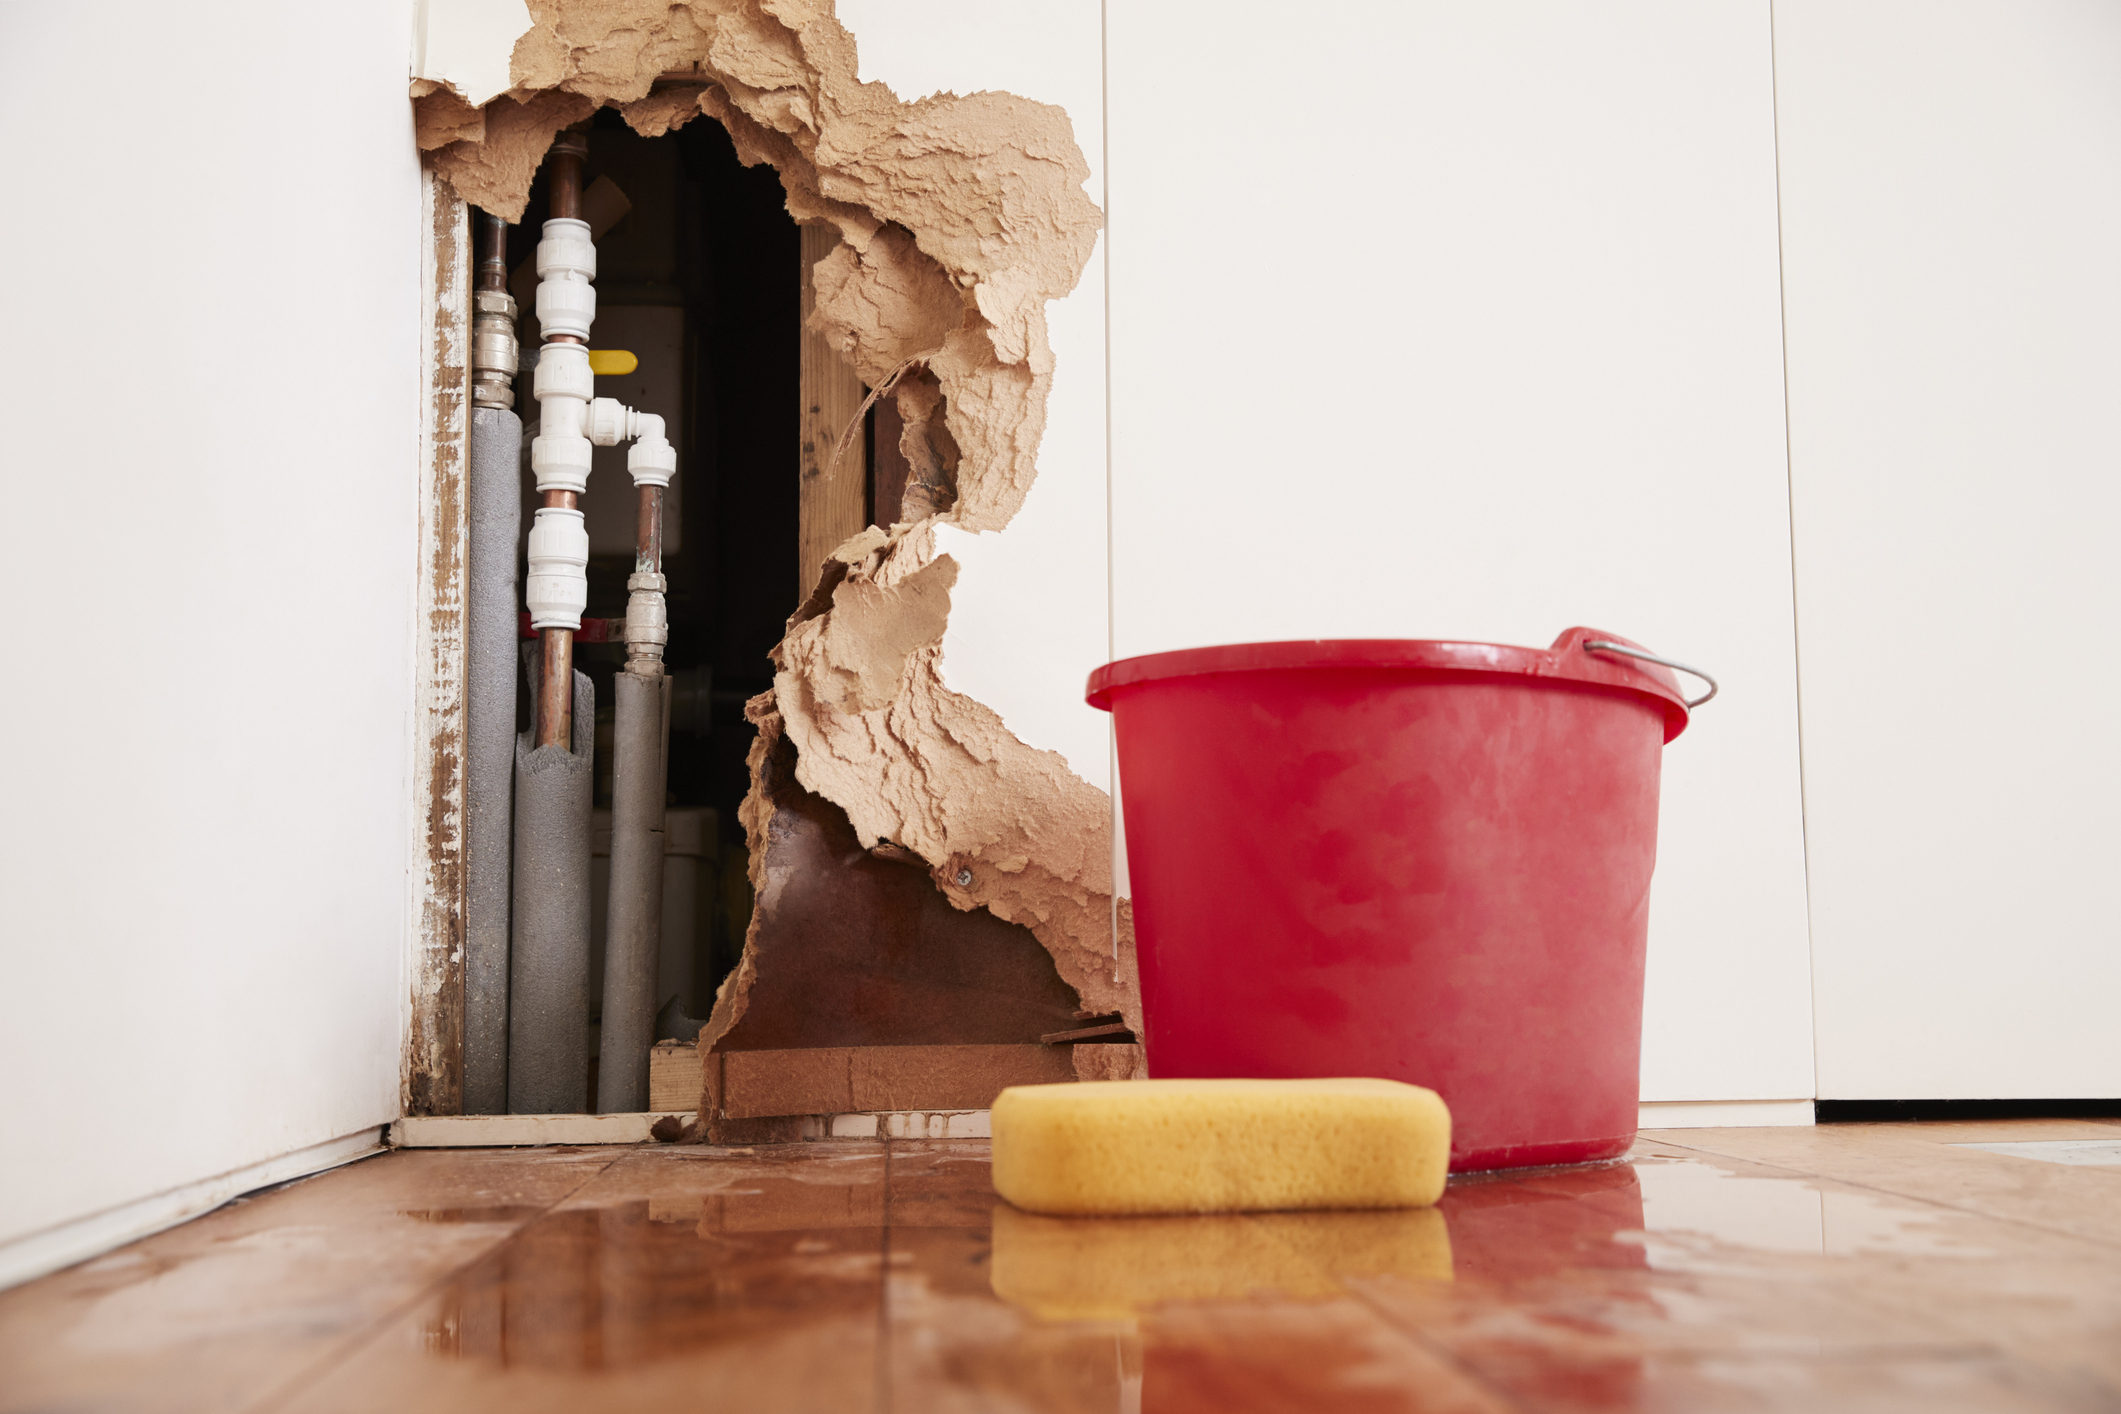 Facts About Home Water Damage